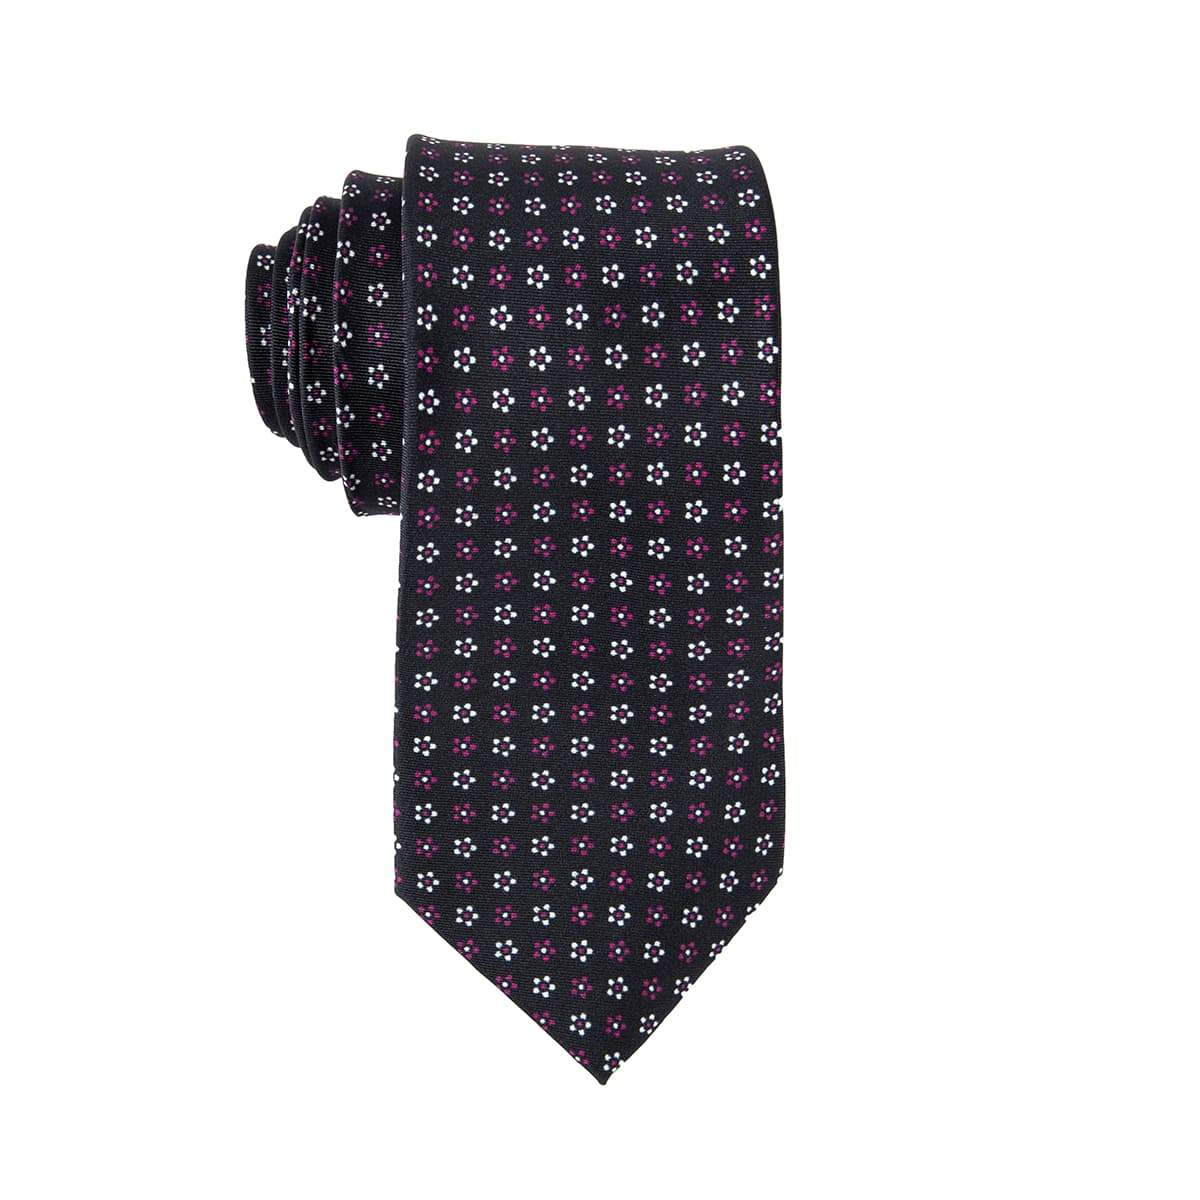 White Daisy Floral Tie